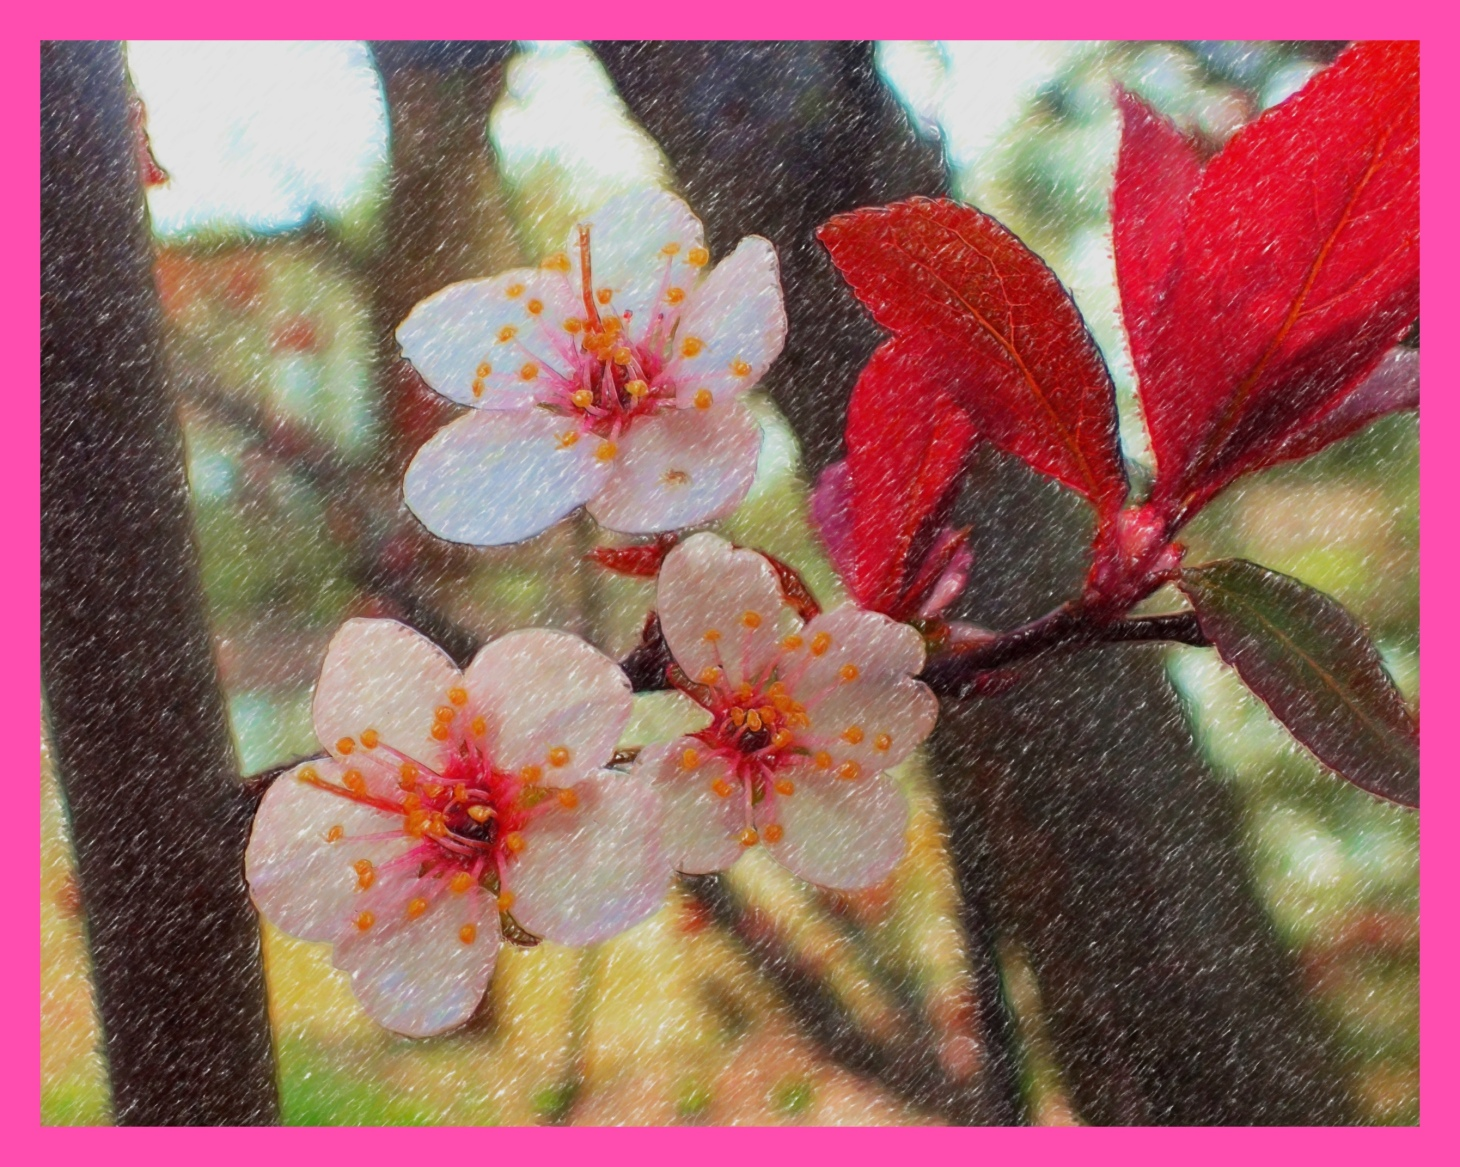 Plum Tree Blossoms. (2) (Digital Color Pencil Rendition) Photo by Thomas Peace c. 2015